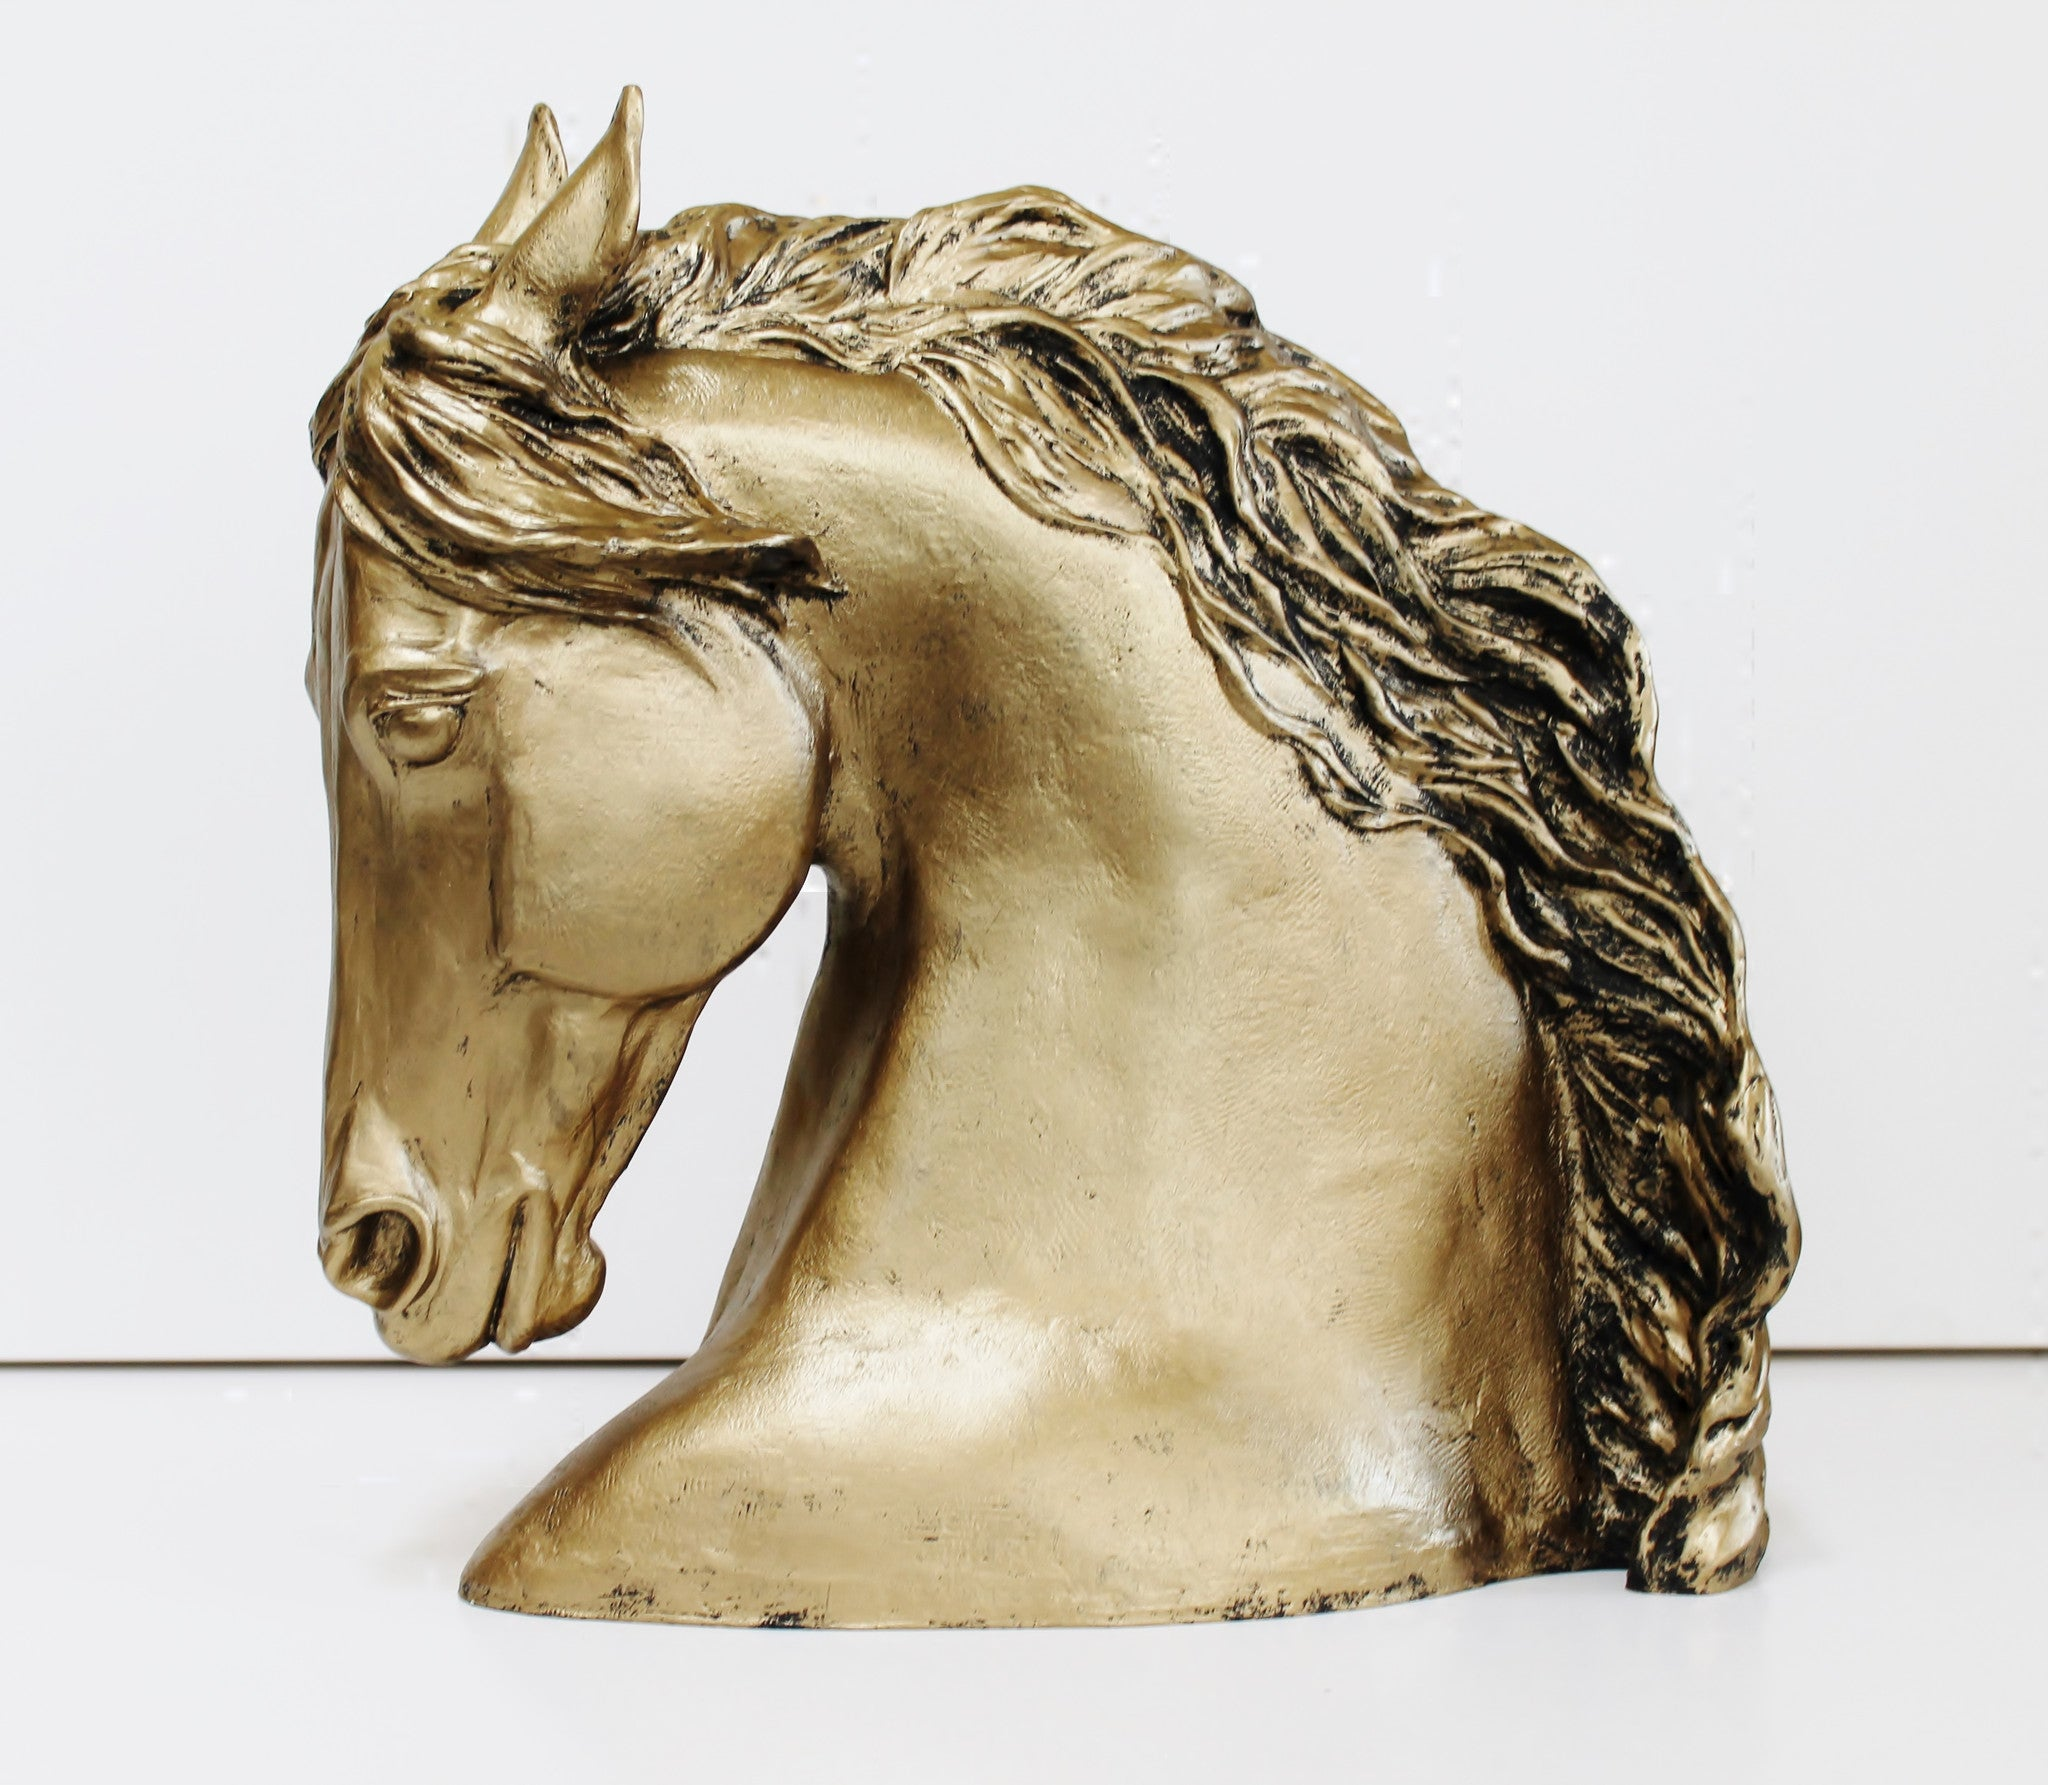 Horse Head Sculpture - gold colorPatricia Borum - 3